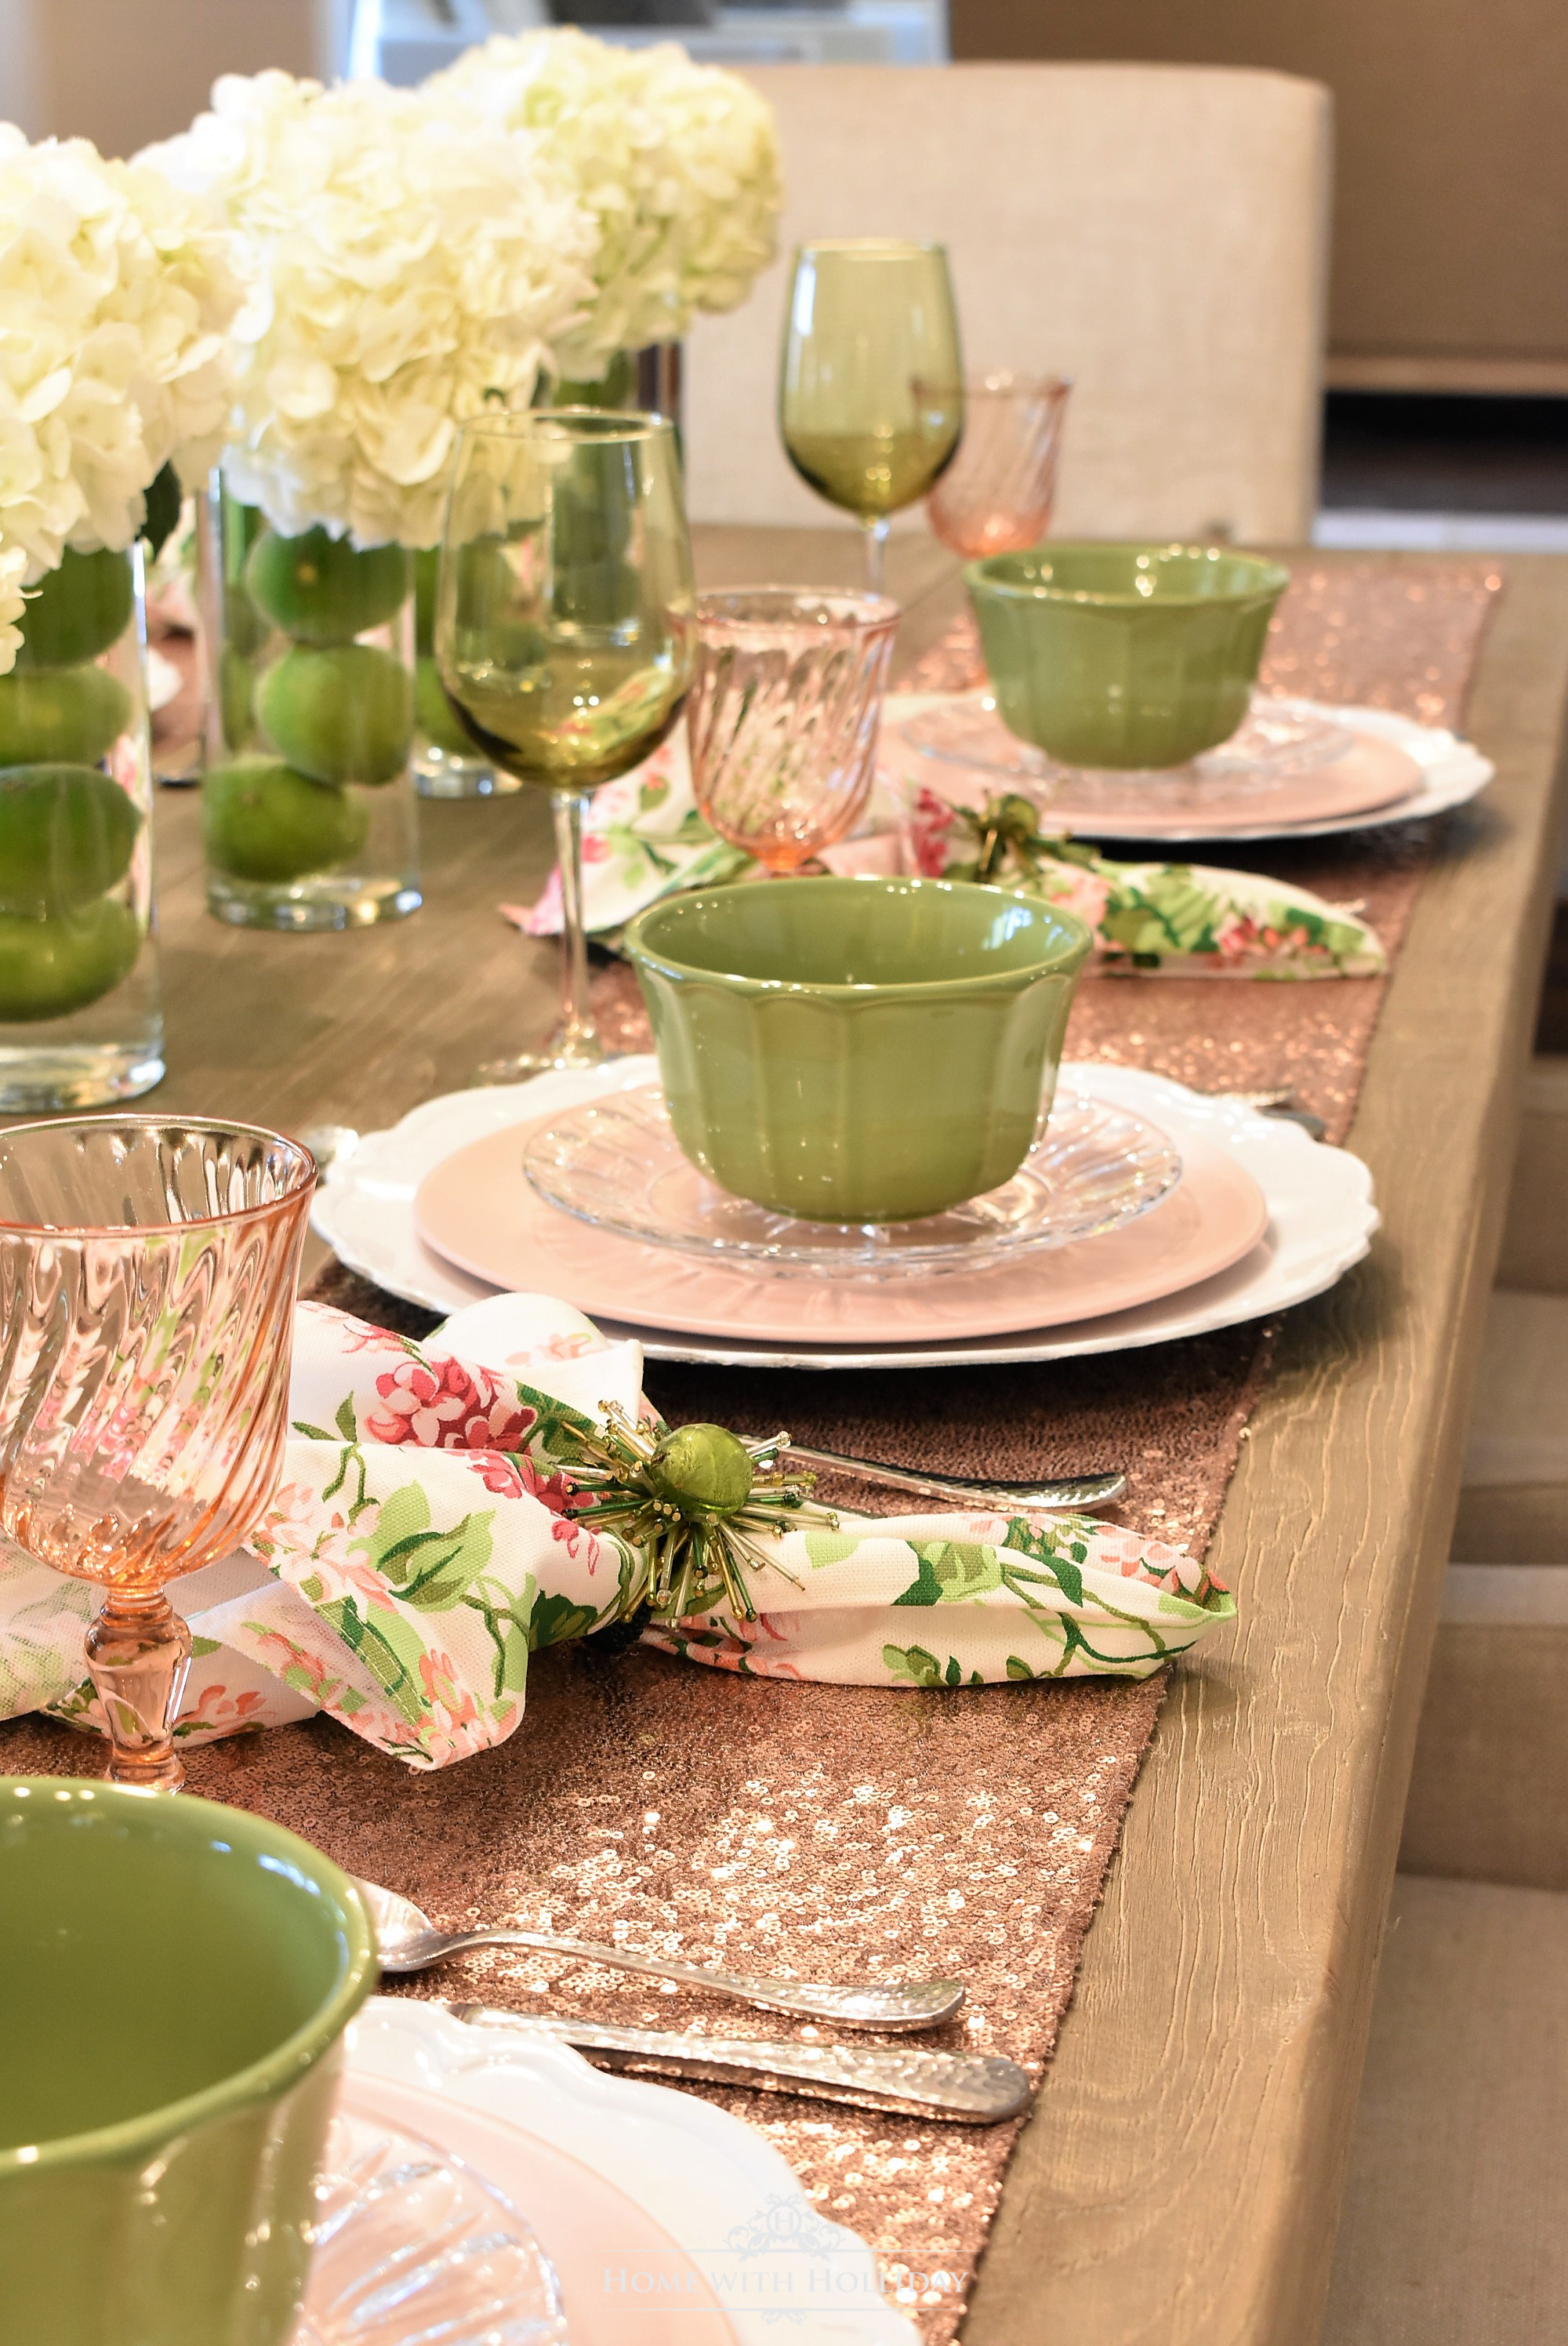 The Fresh Colors Are Perfect For A Spring Table Setting And Became The  Inspiration For The Rest Of The Table Decor. This Table Setting Would Also  Be Very ...